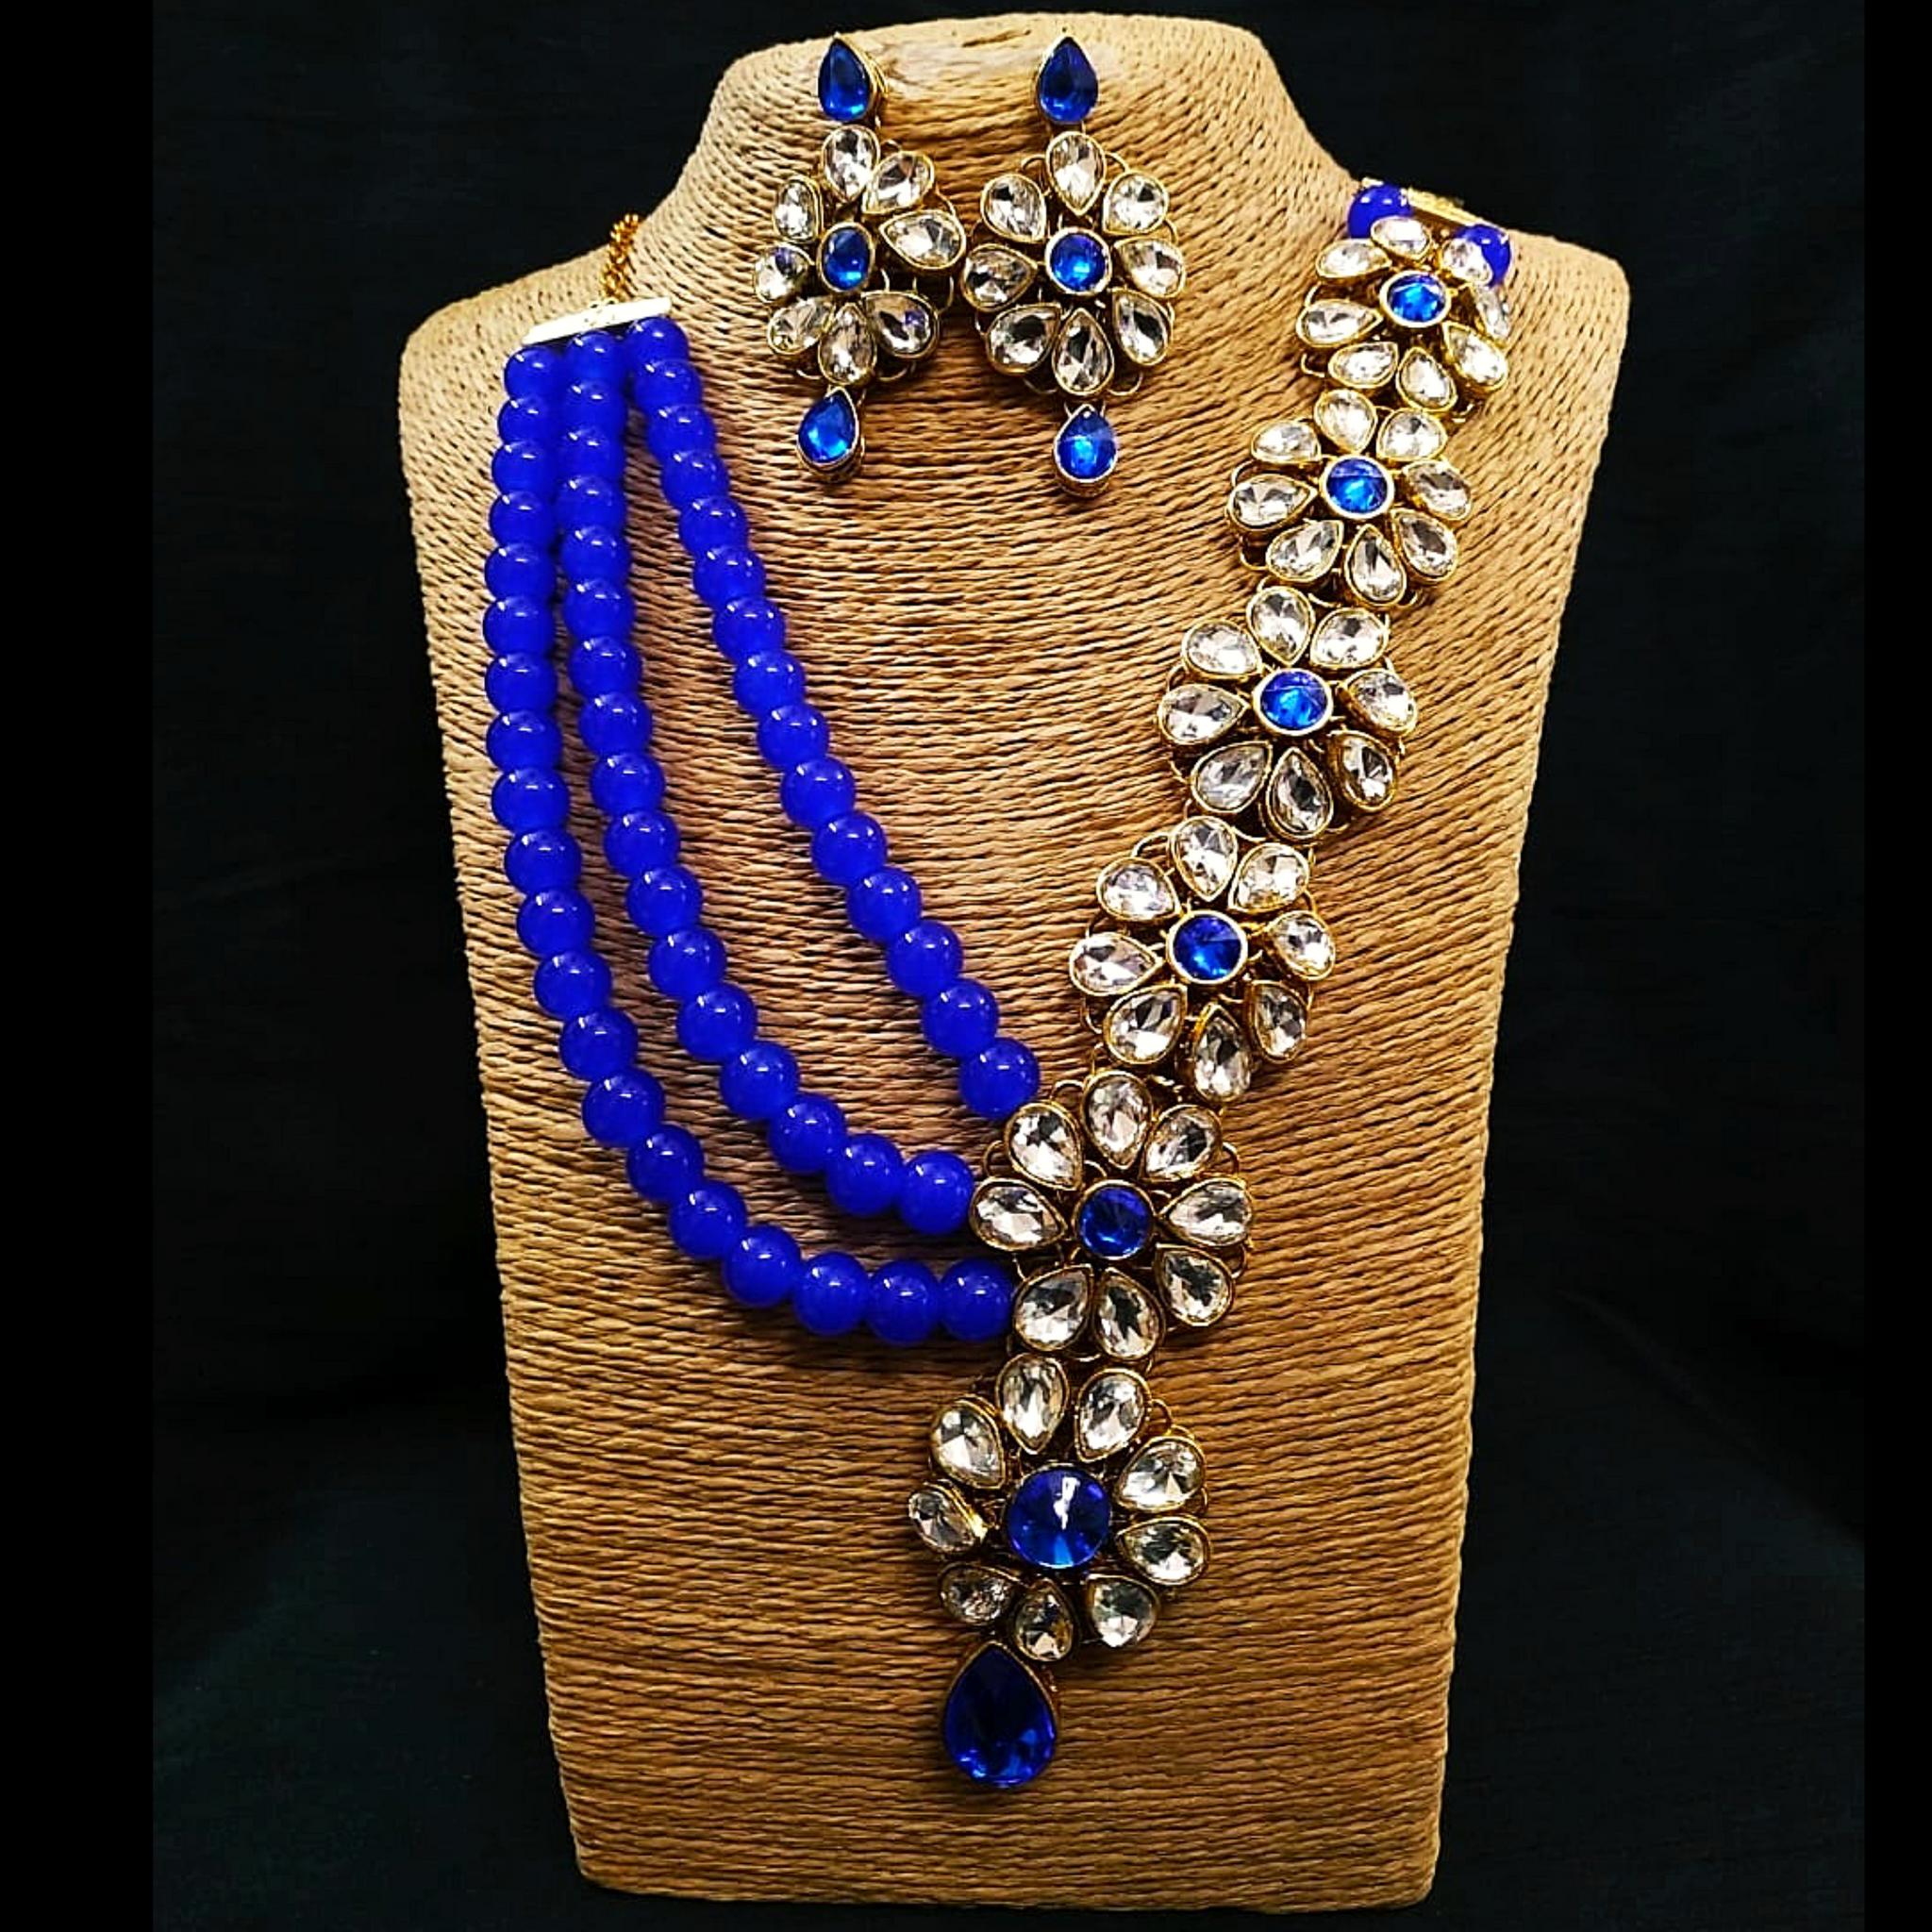 Kundan Look Floral Design - Necklace Set in Golden - Blue